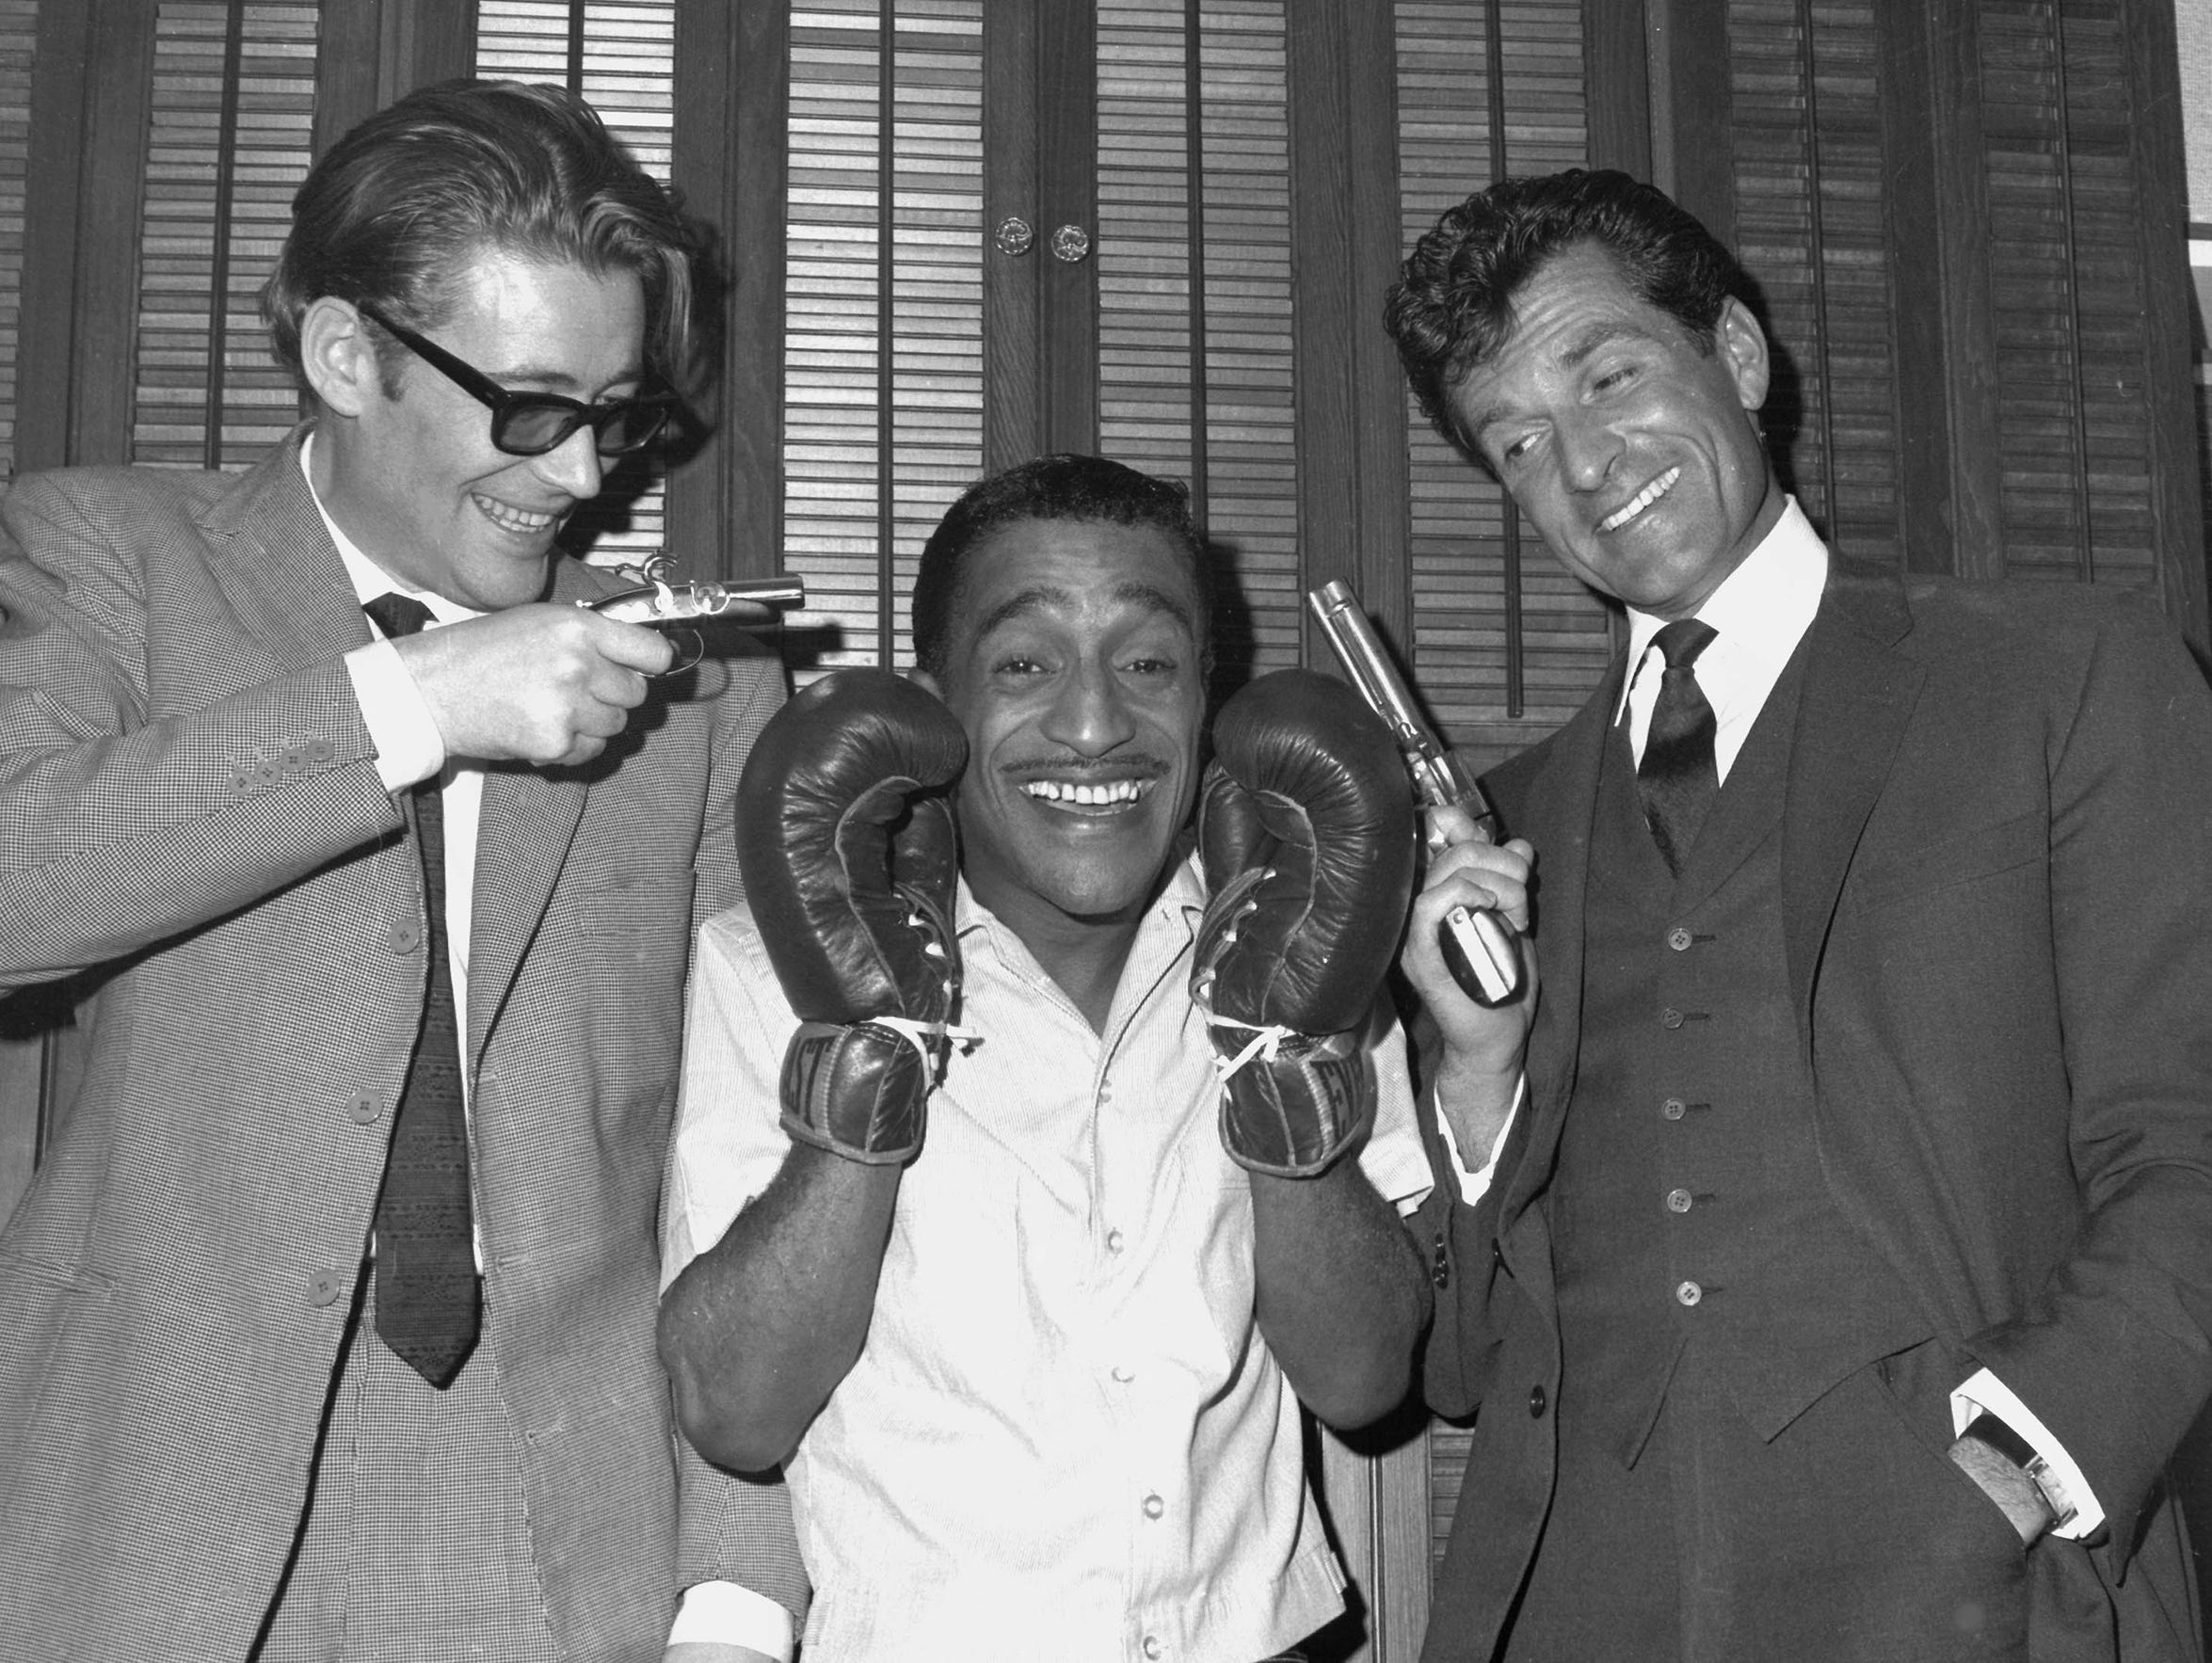 British actor Peter O'Toole, left, has a laugh with